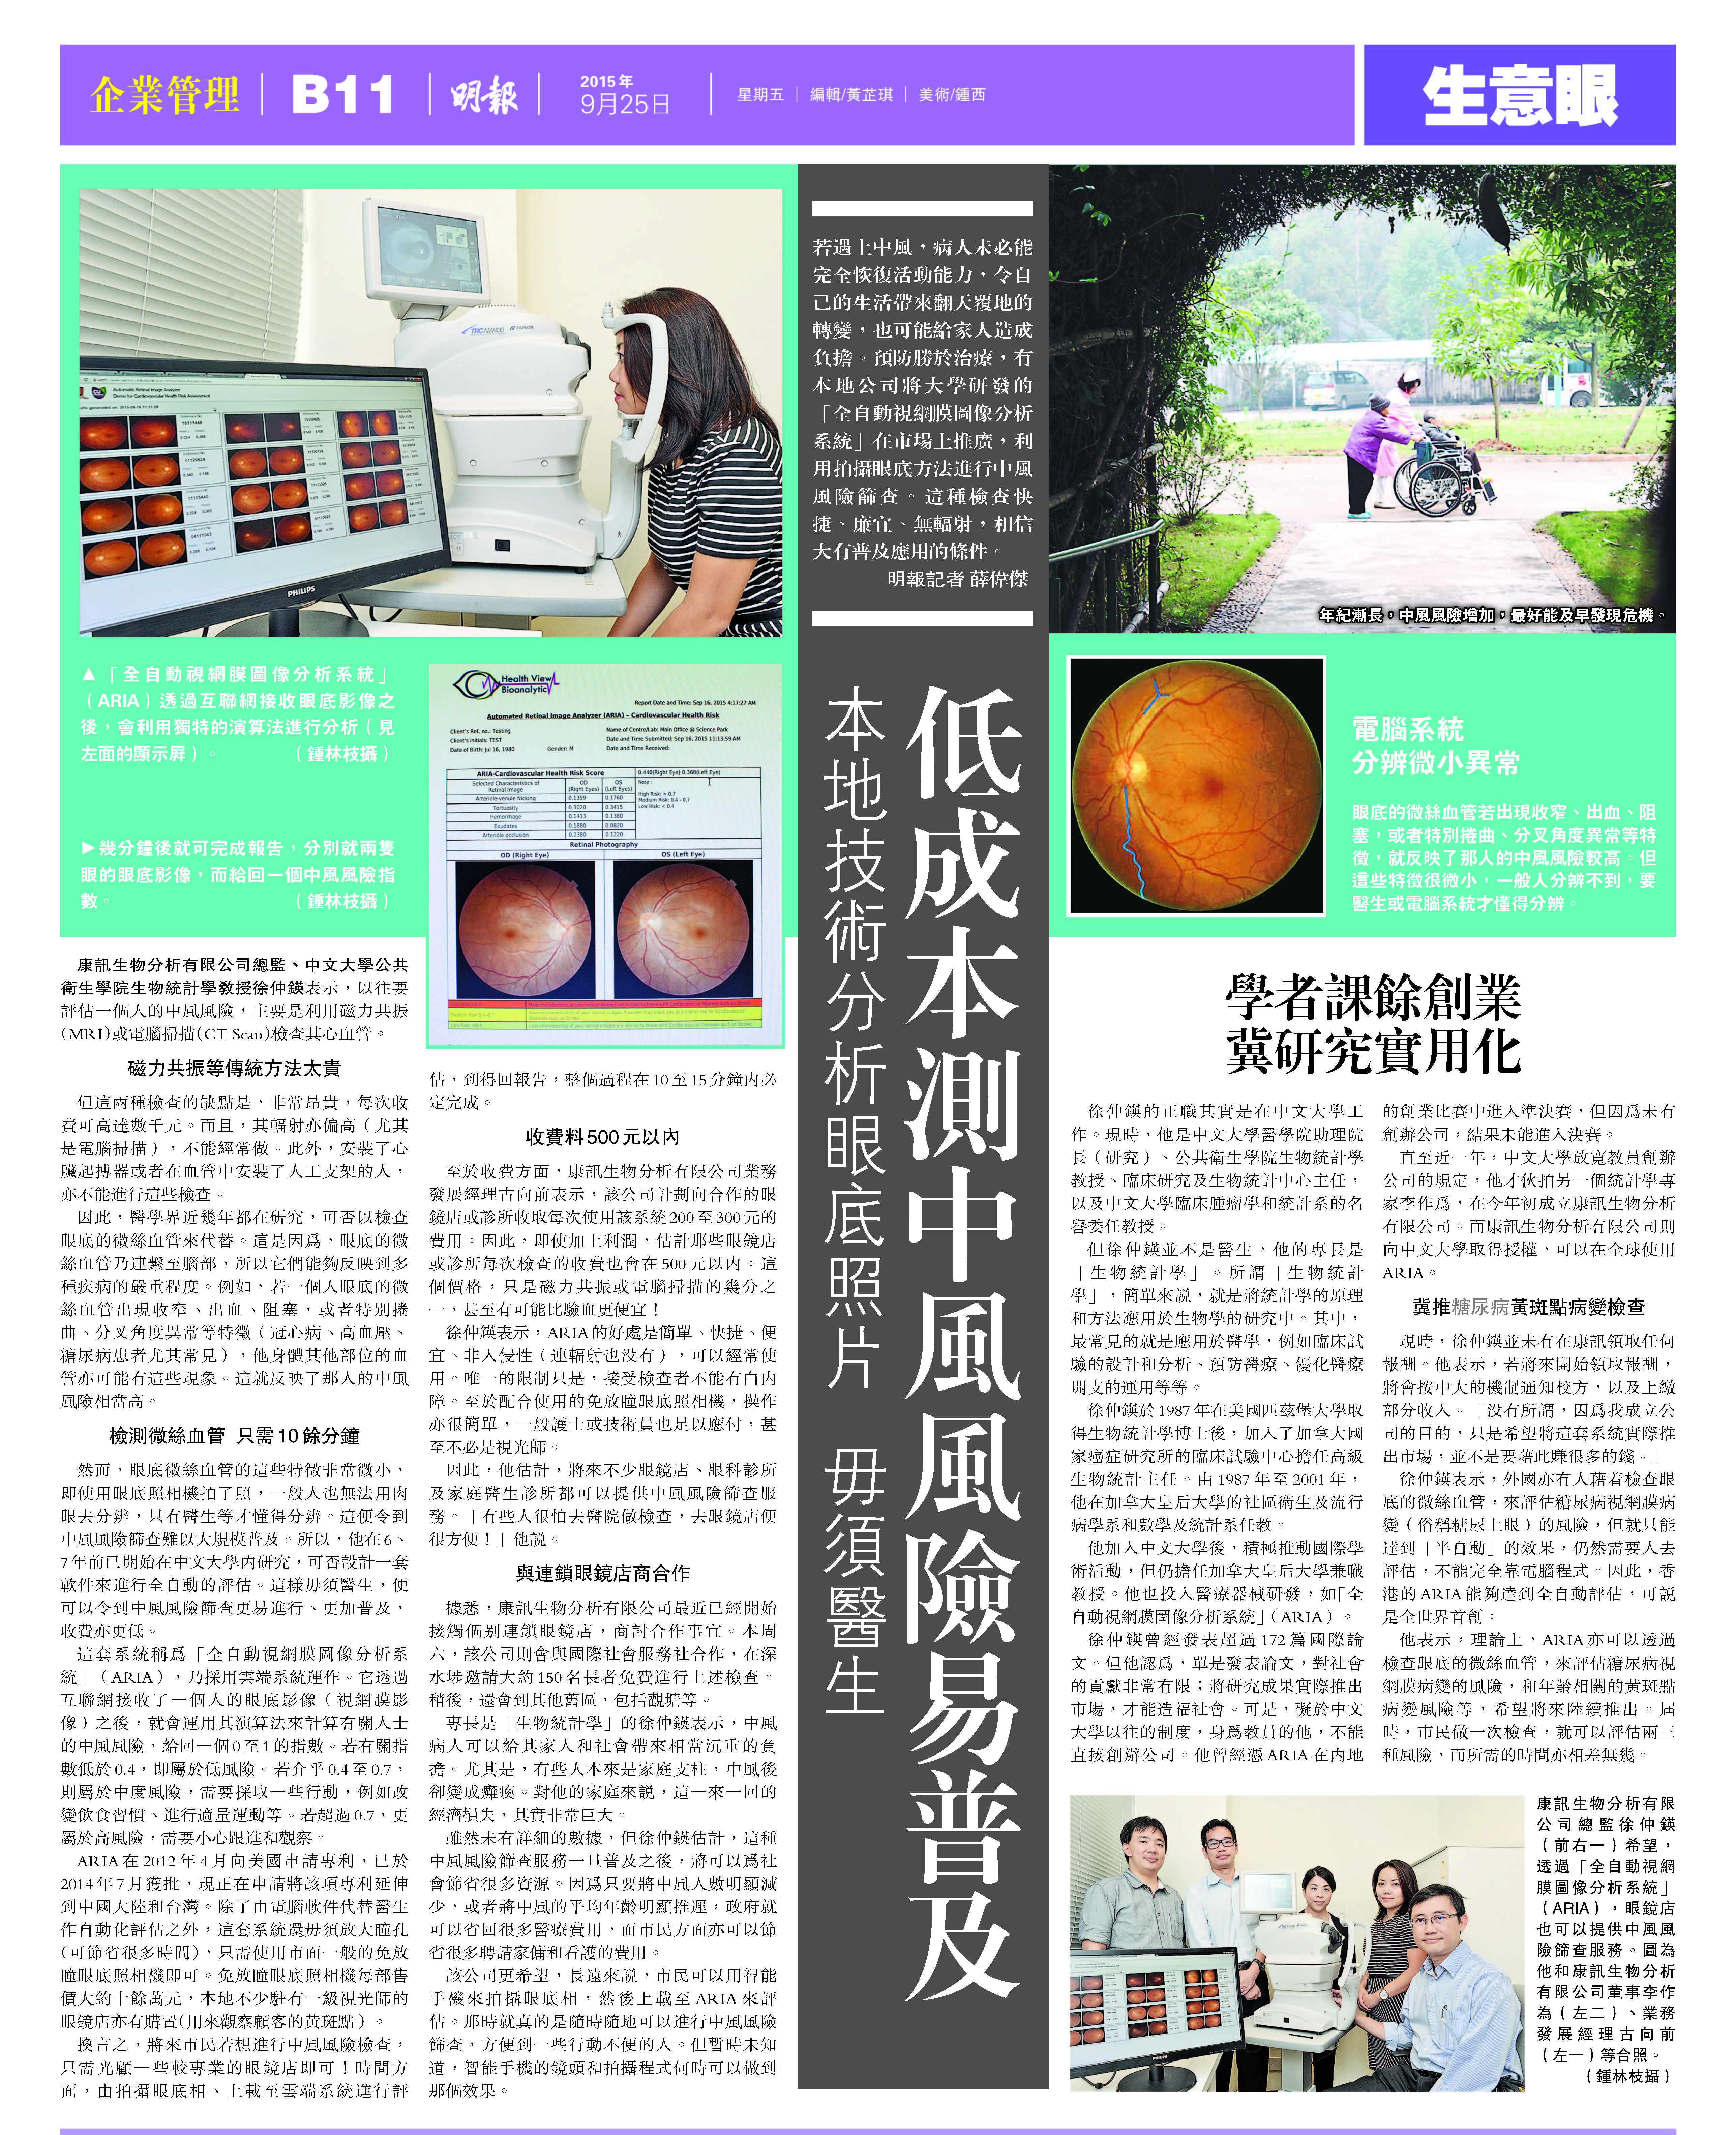 Health View Bioanalytic ARIA Ming Pao 2015-09-25 Cleaned